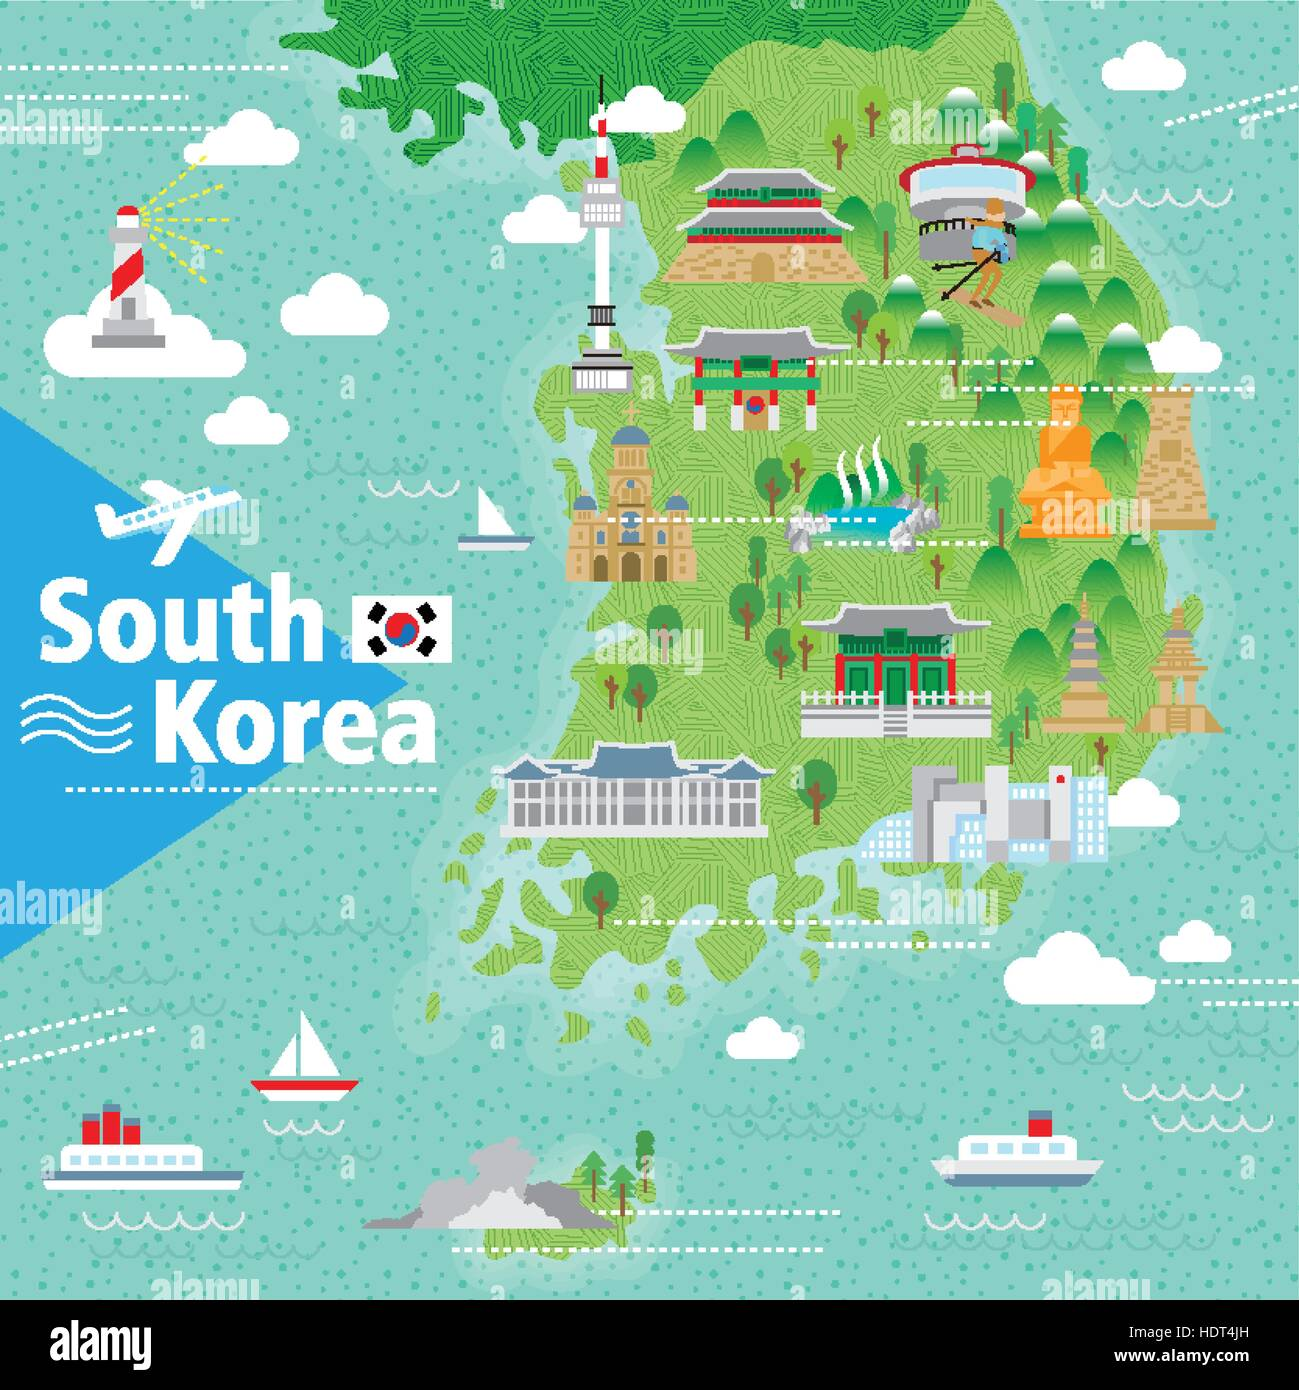 adorable South Korea travel map with colorful attractions Stock